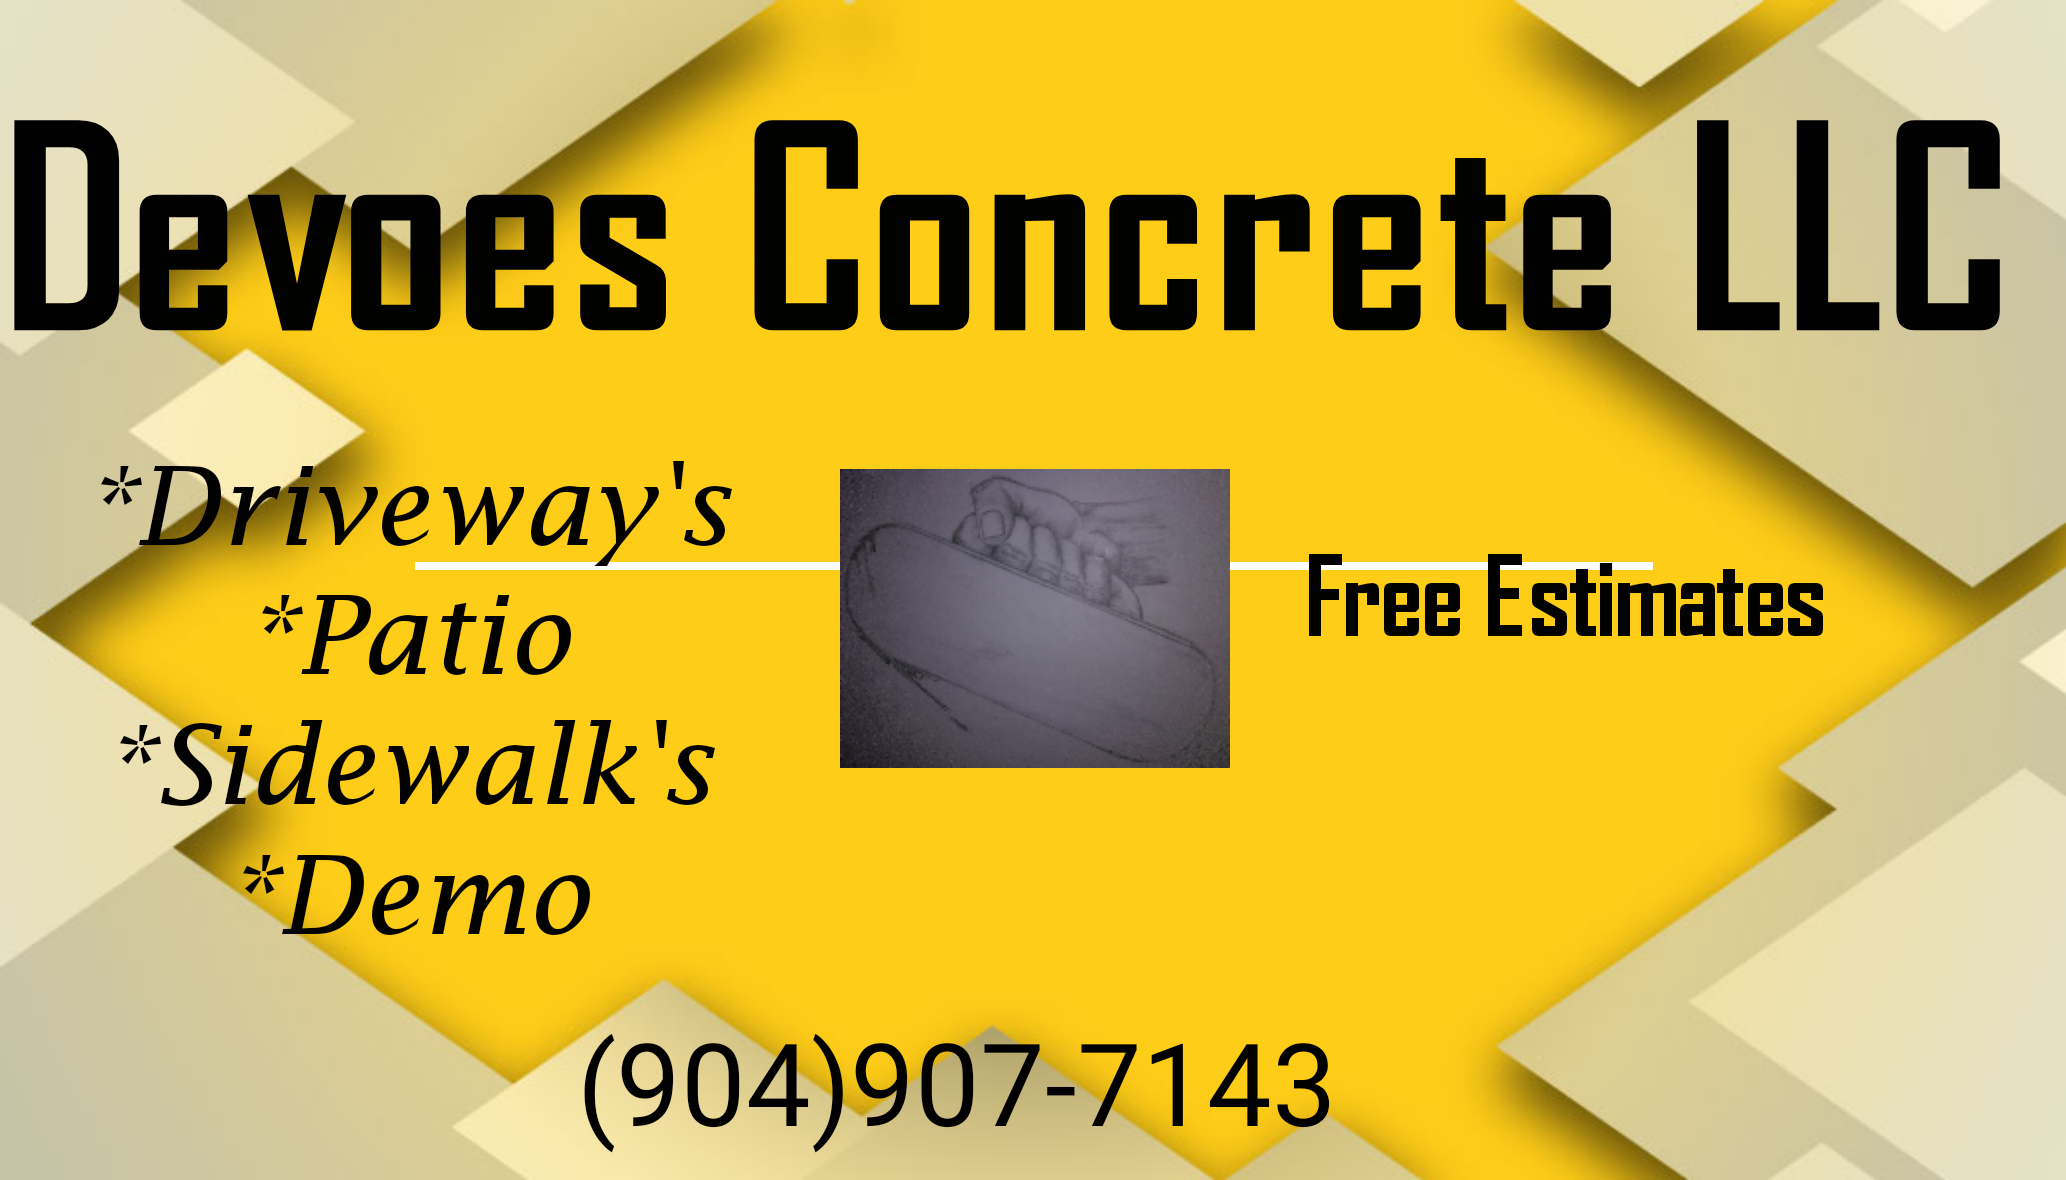 Devoes Concrete LLC